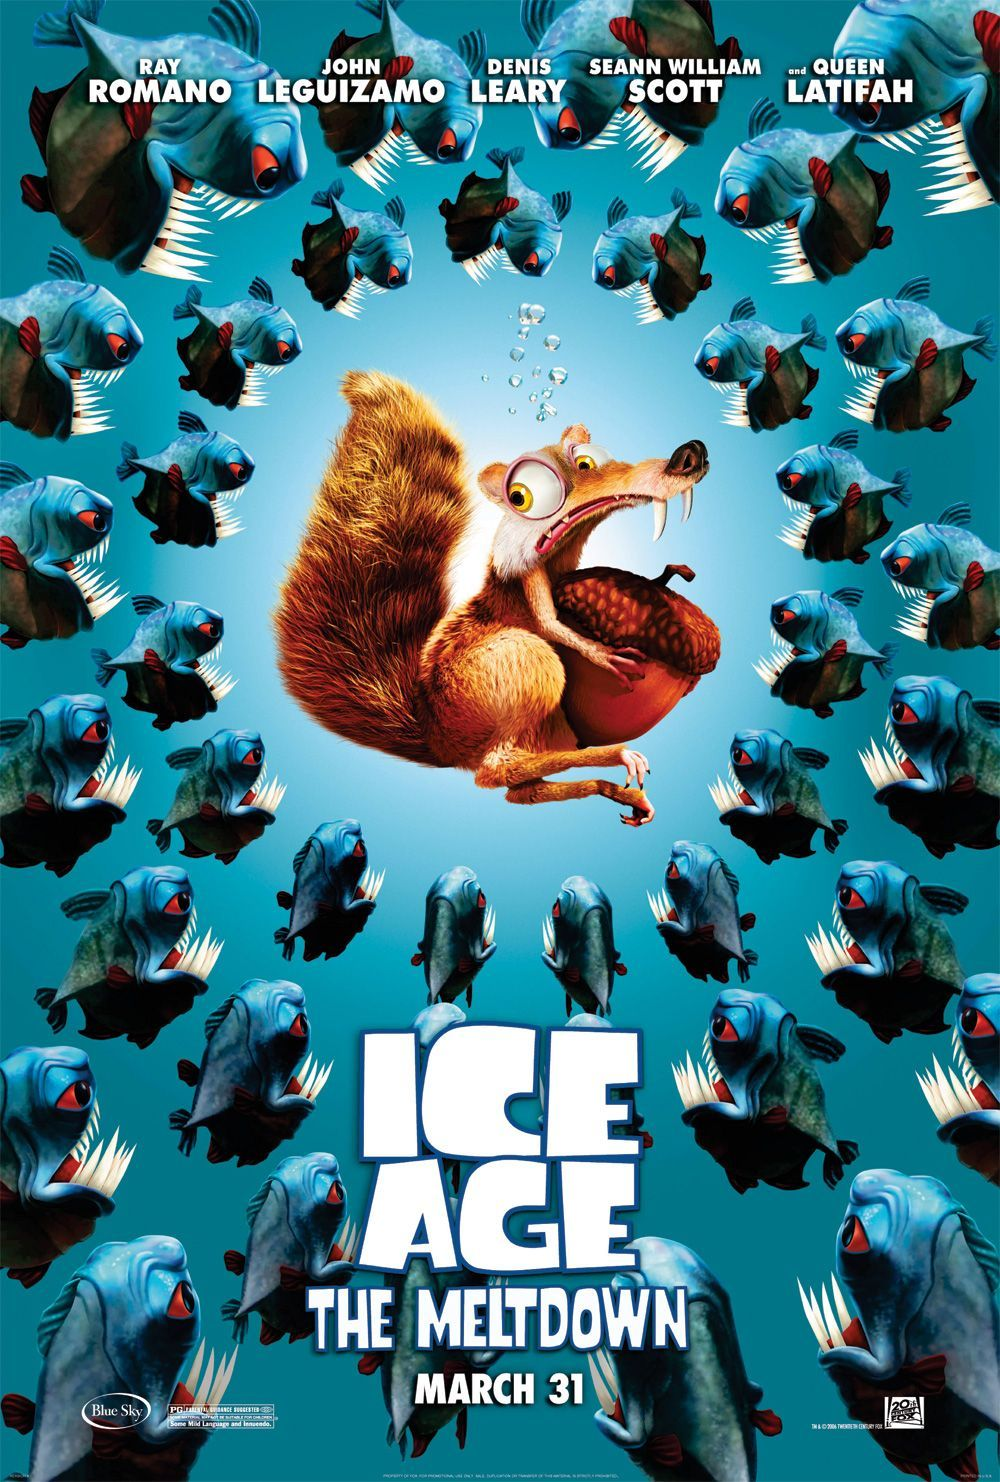 Ice Age - 2: The Meltdown (2006) : (mpdb)